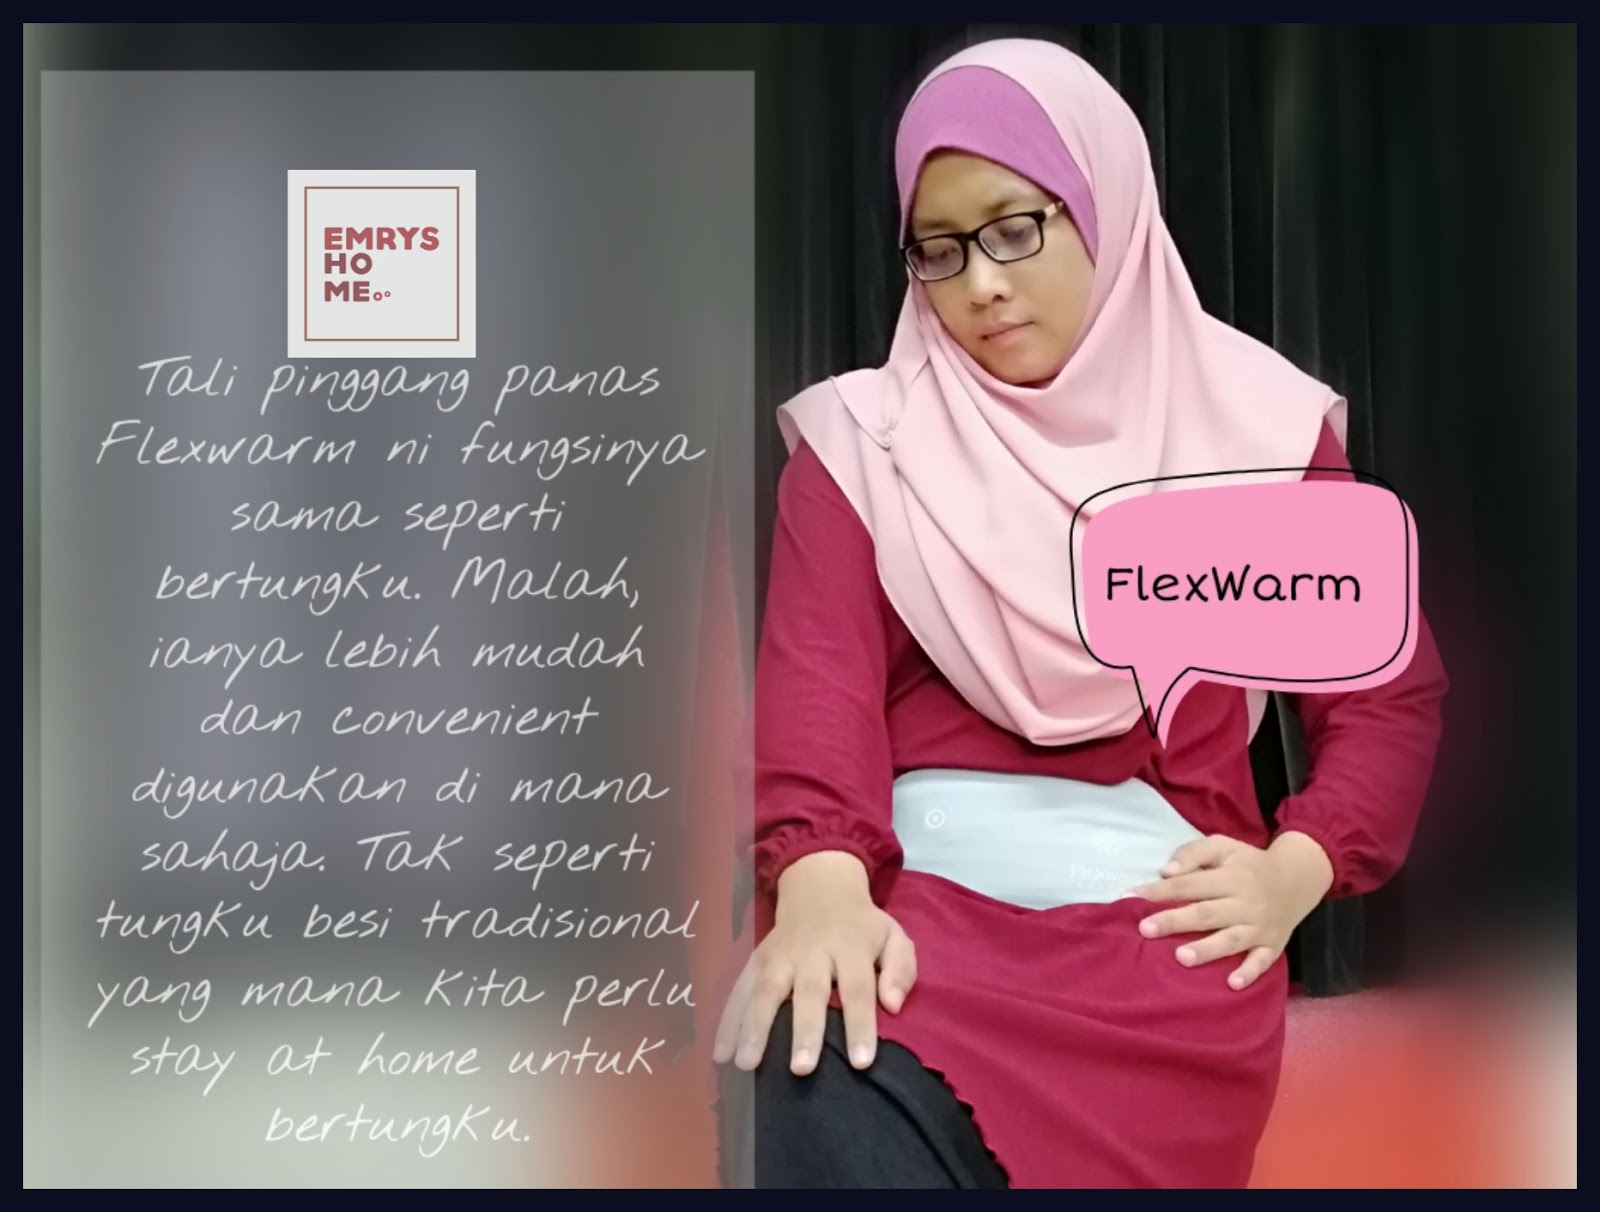 Cara Atasi Senggugut, awas senggugut, dysmenorrhea, dismenoria, abdominal cramp, sakit perut datang haid, petua kurangkan senggugut, bertungku senggugut, EmrysHome & Flexwarm Menstrual Pain Relief Heat Belt;  EmrysHome & Flexwarm Therapy Menstrual Cramp Warming Belt